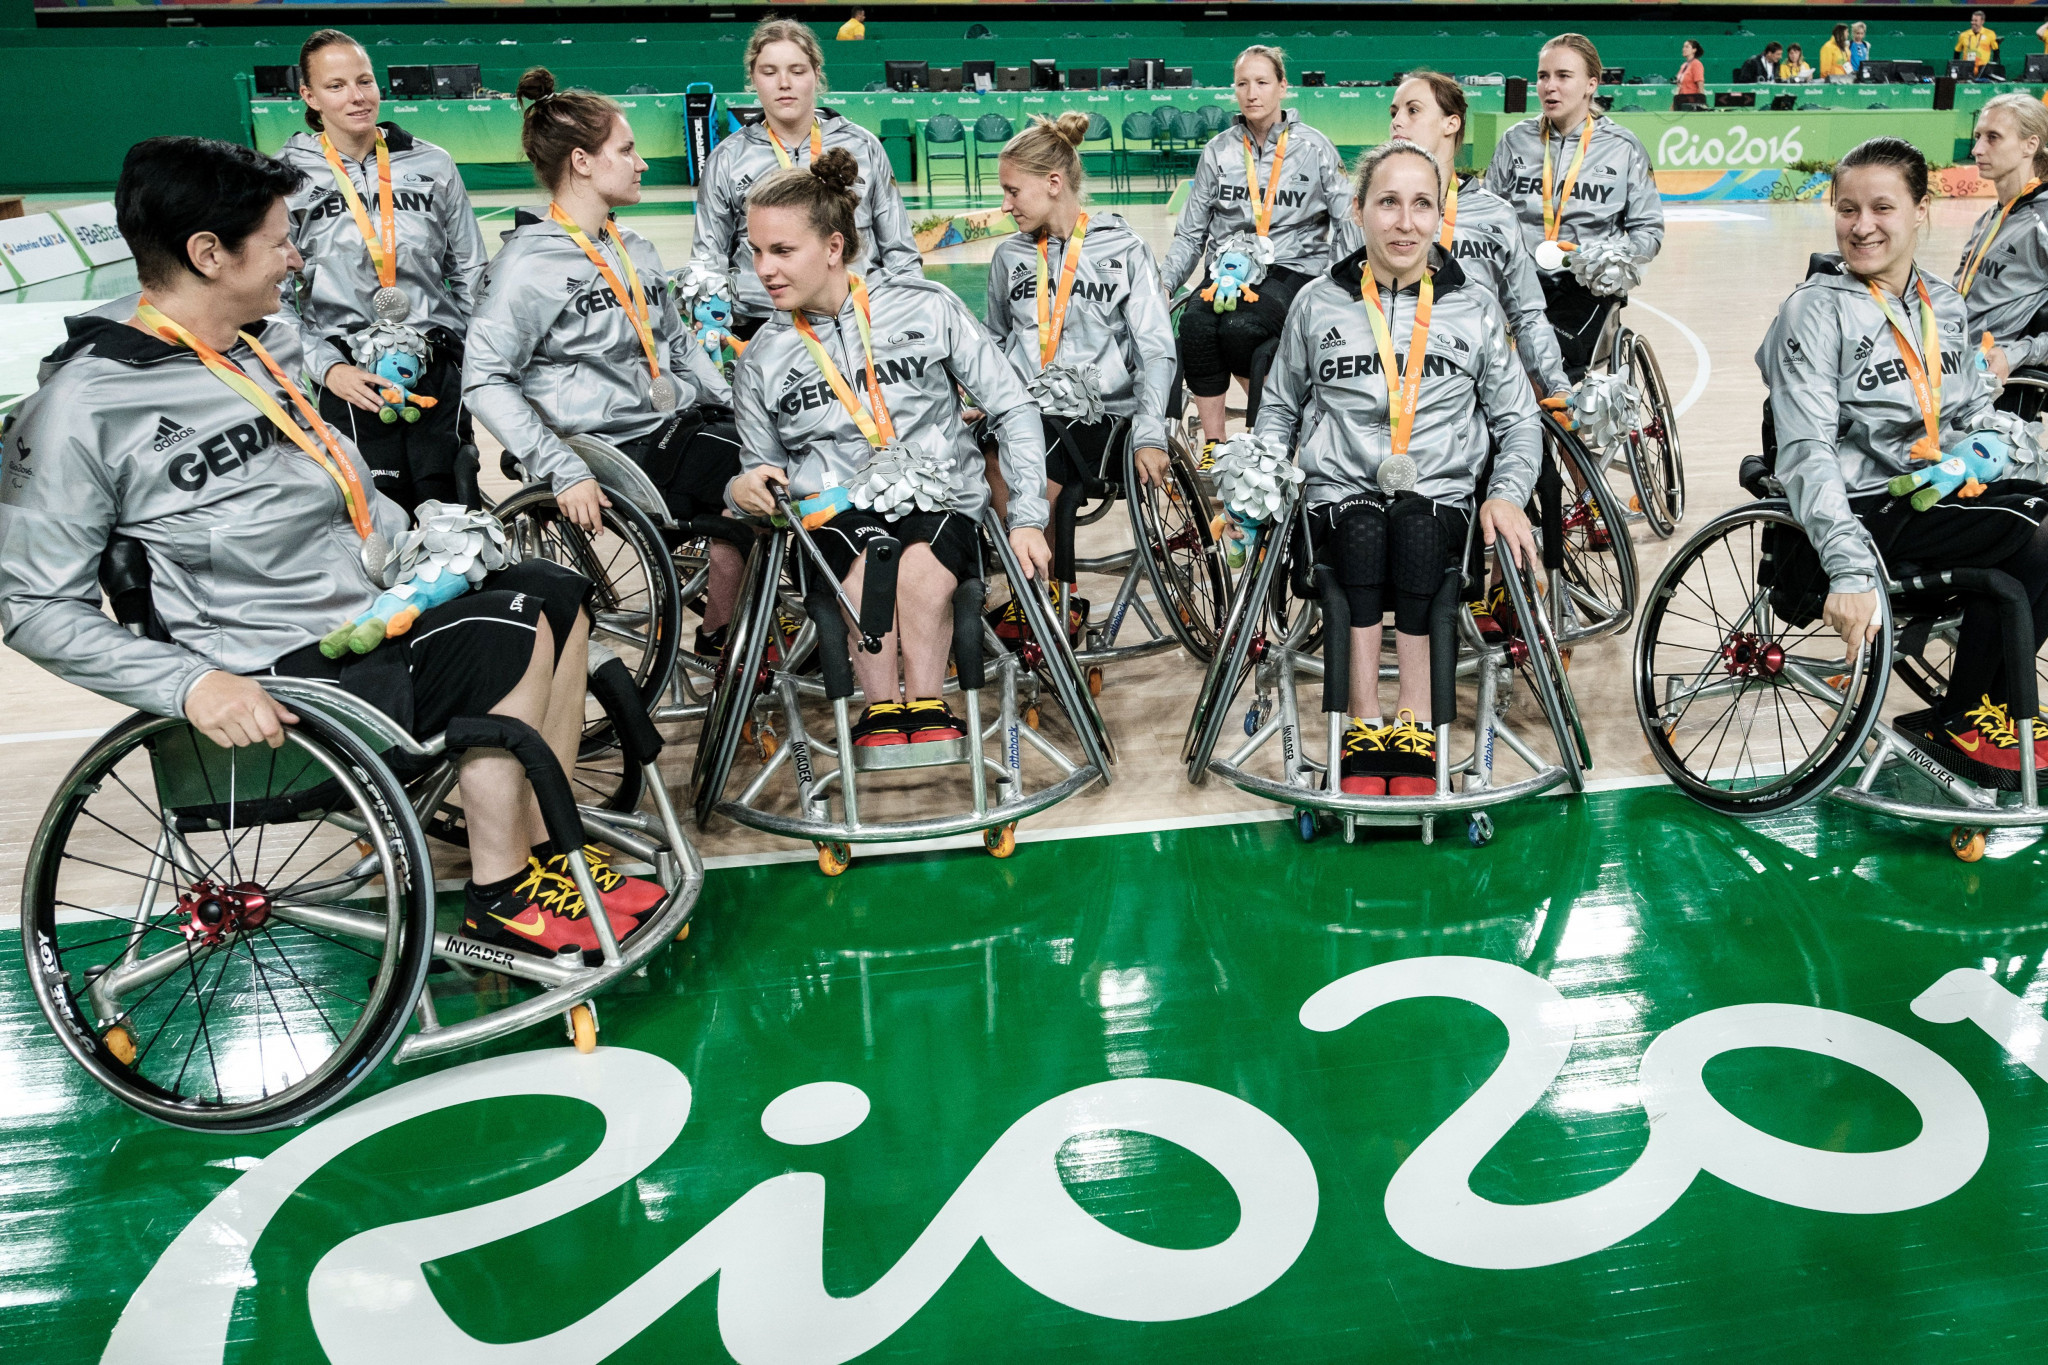 Olympic and Paralympic athletes will compete under the same